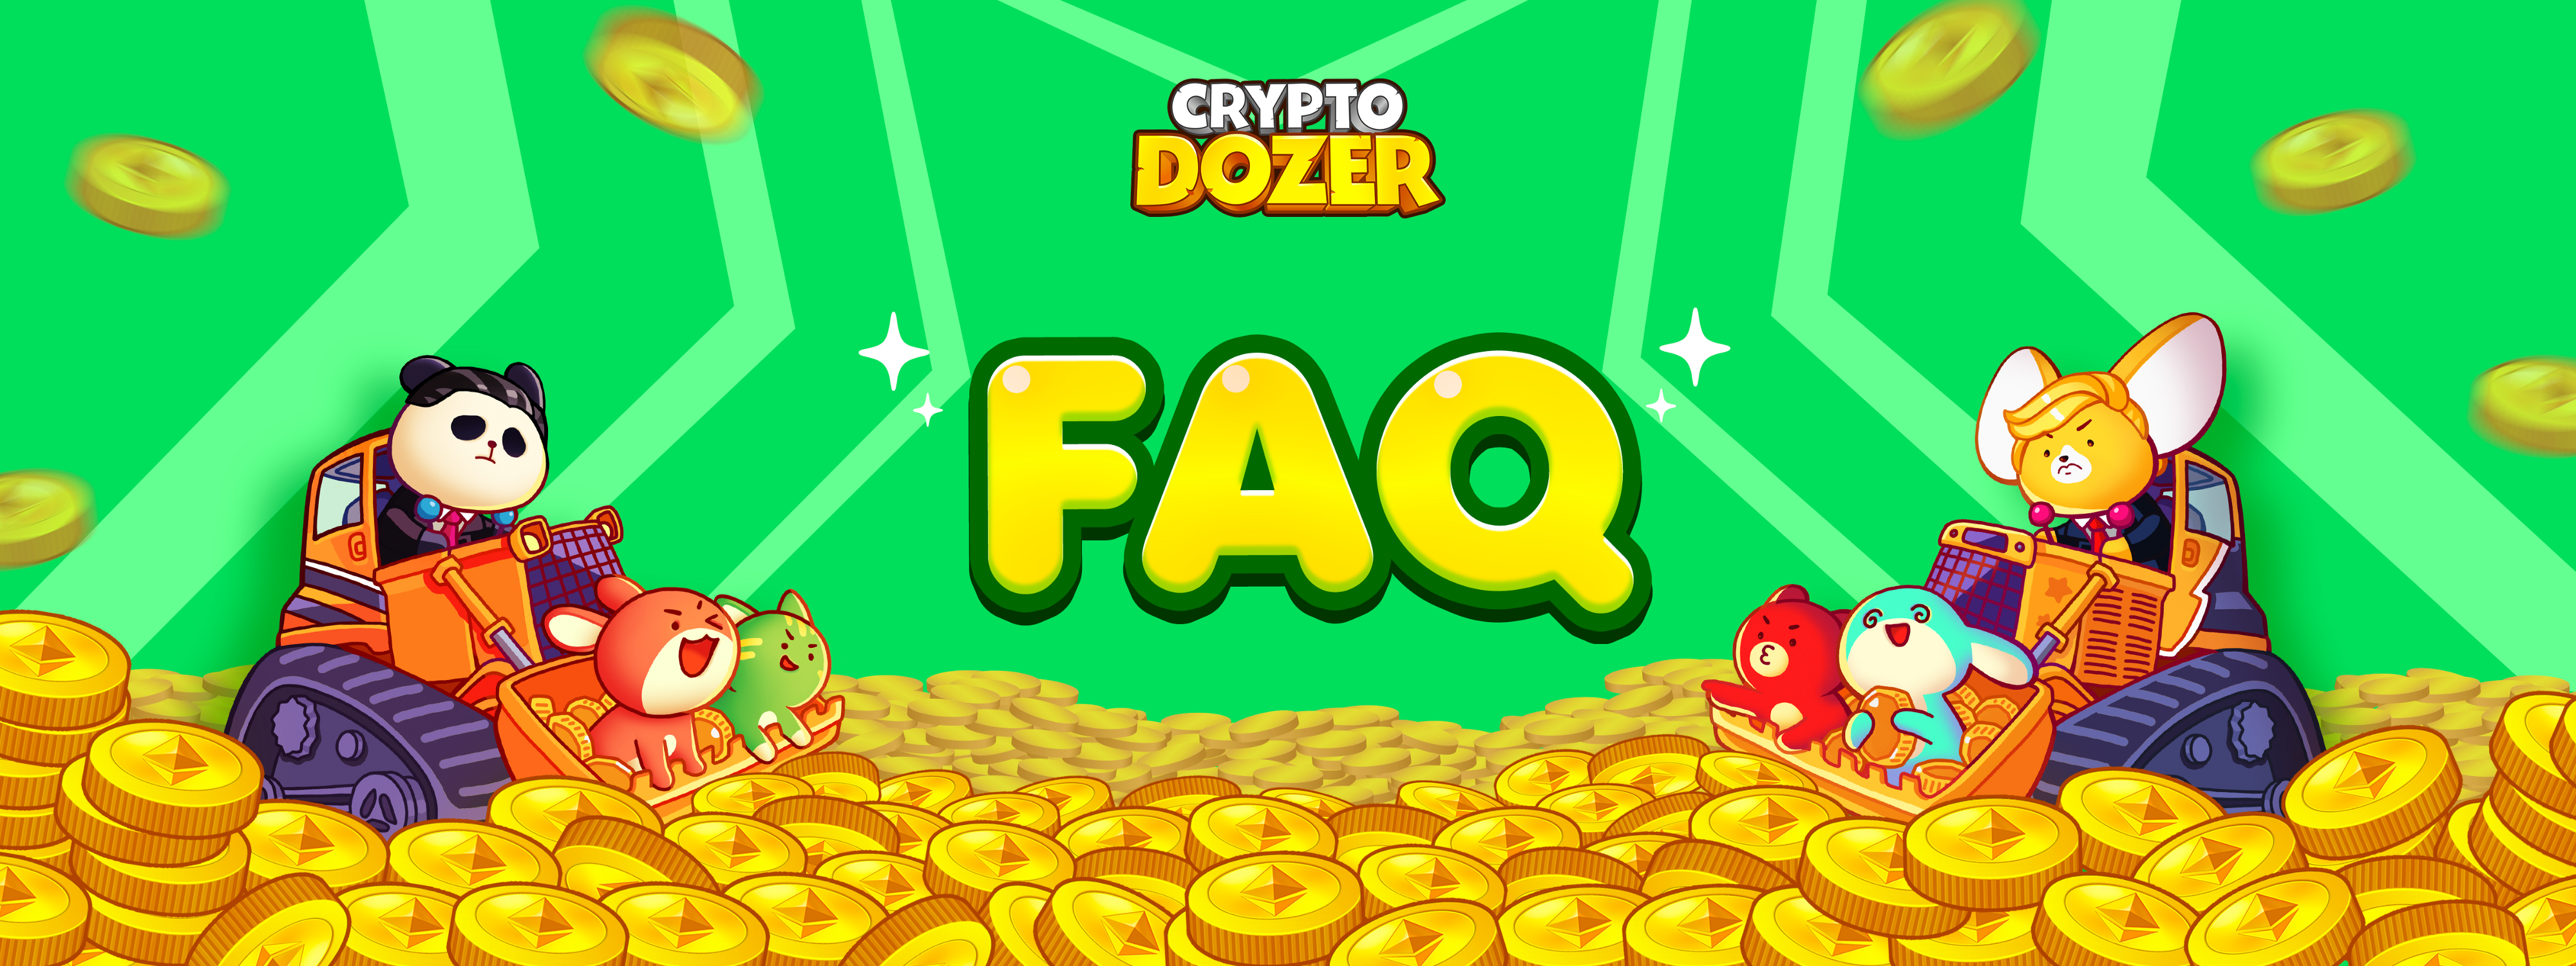 CryptoDozer 101: FAQ - PlayDapp - Medium